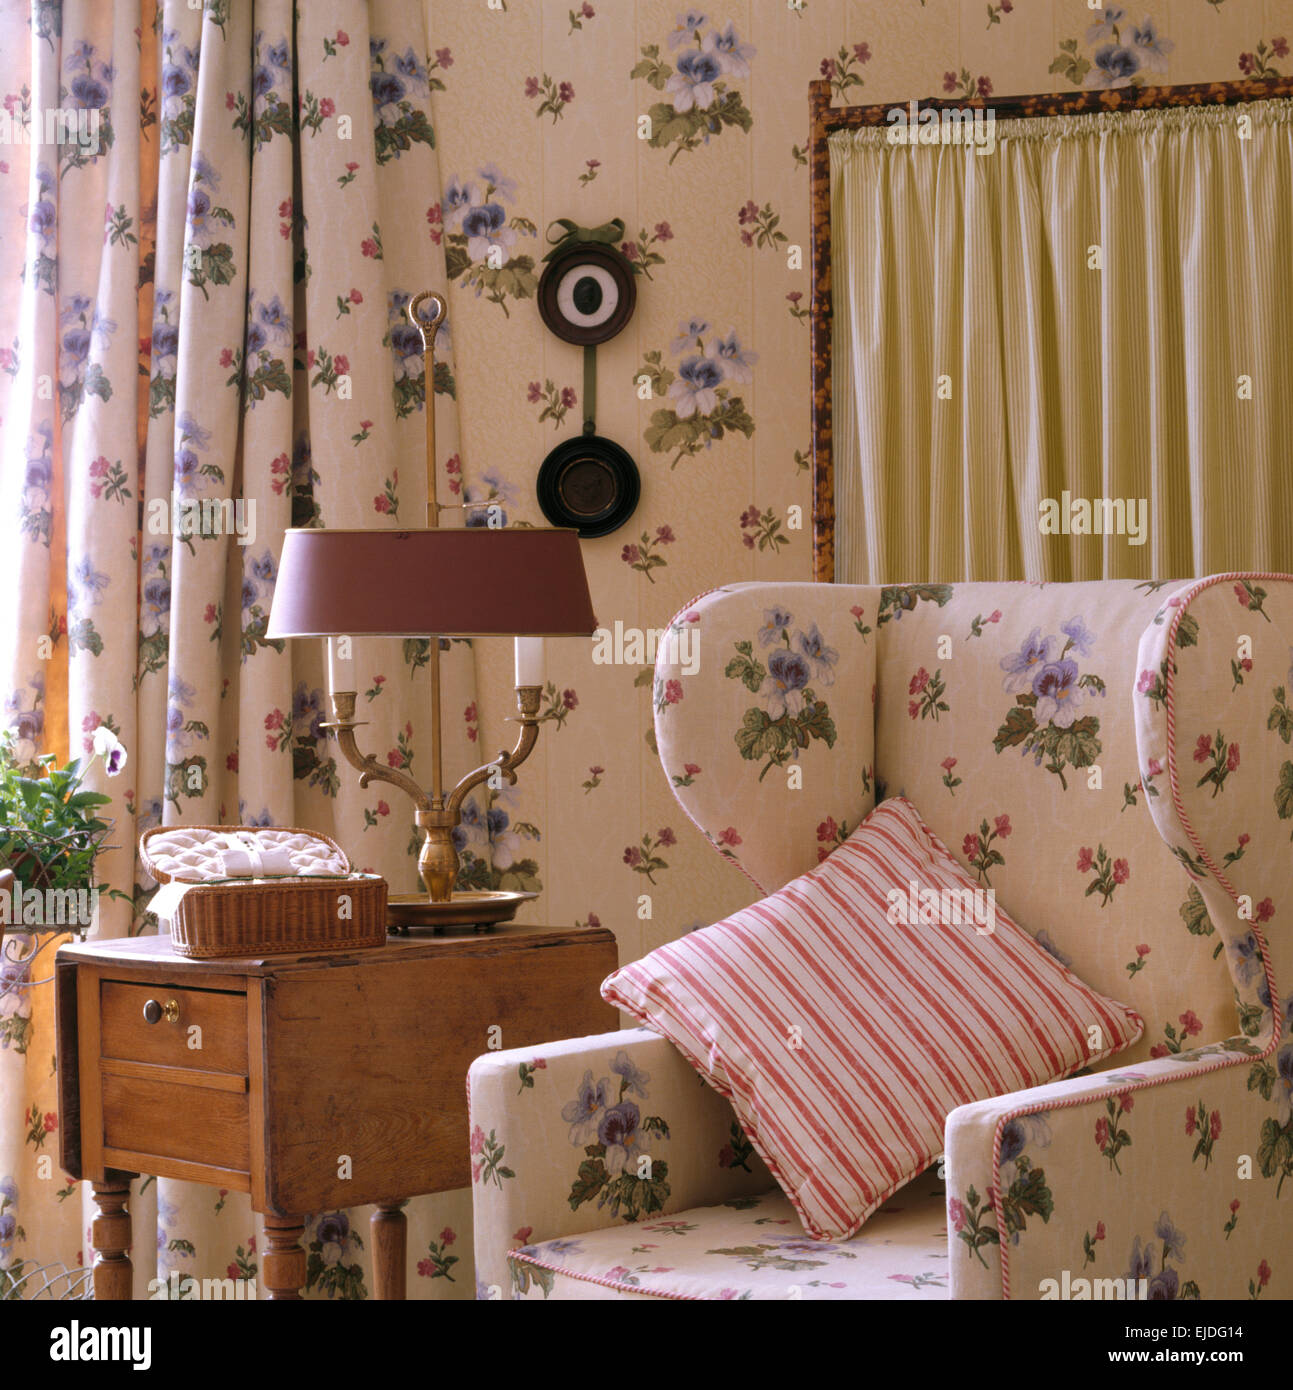 Striped Cushion On Floral Wing Chair In Nineties Bedroom With Stock